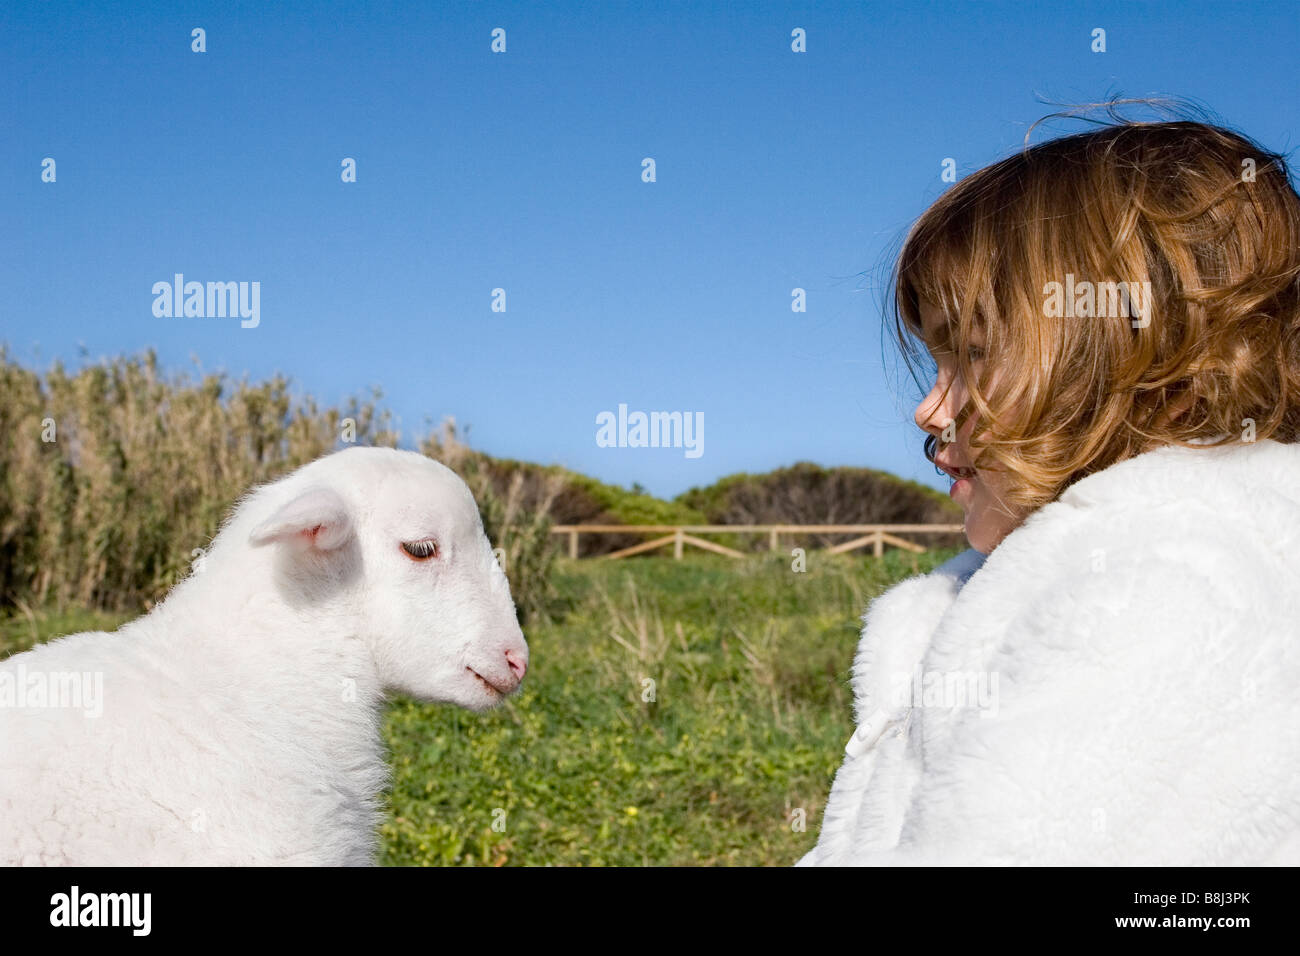 young girl playing with a sheep Stock Photo